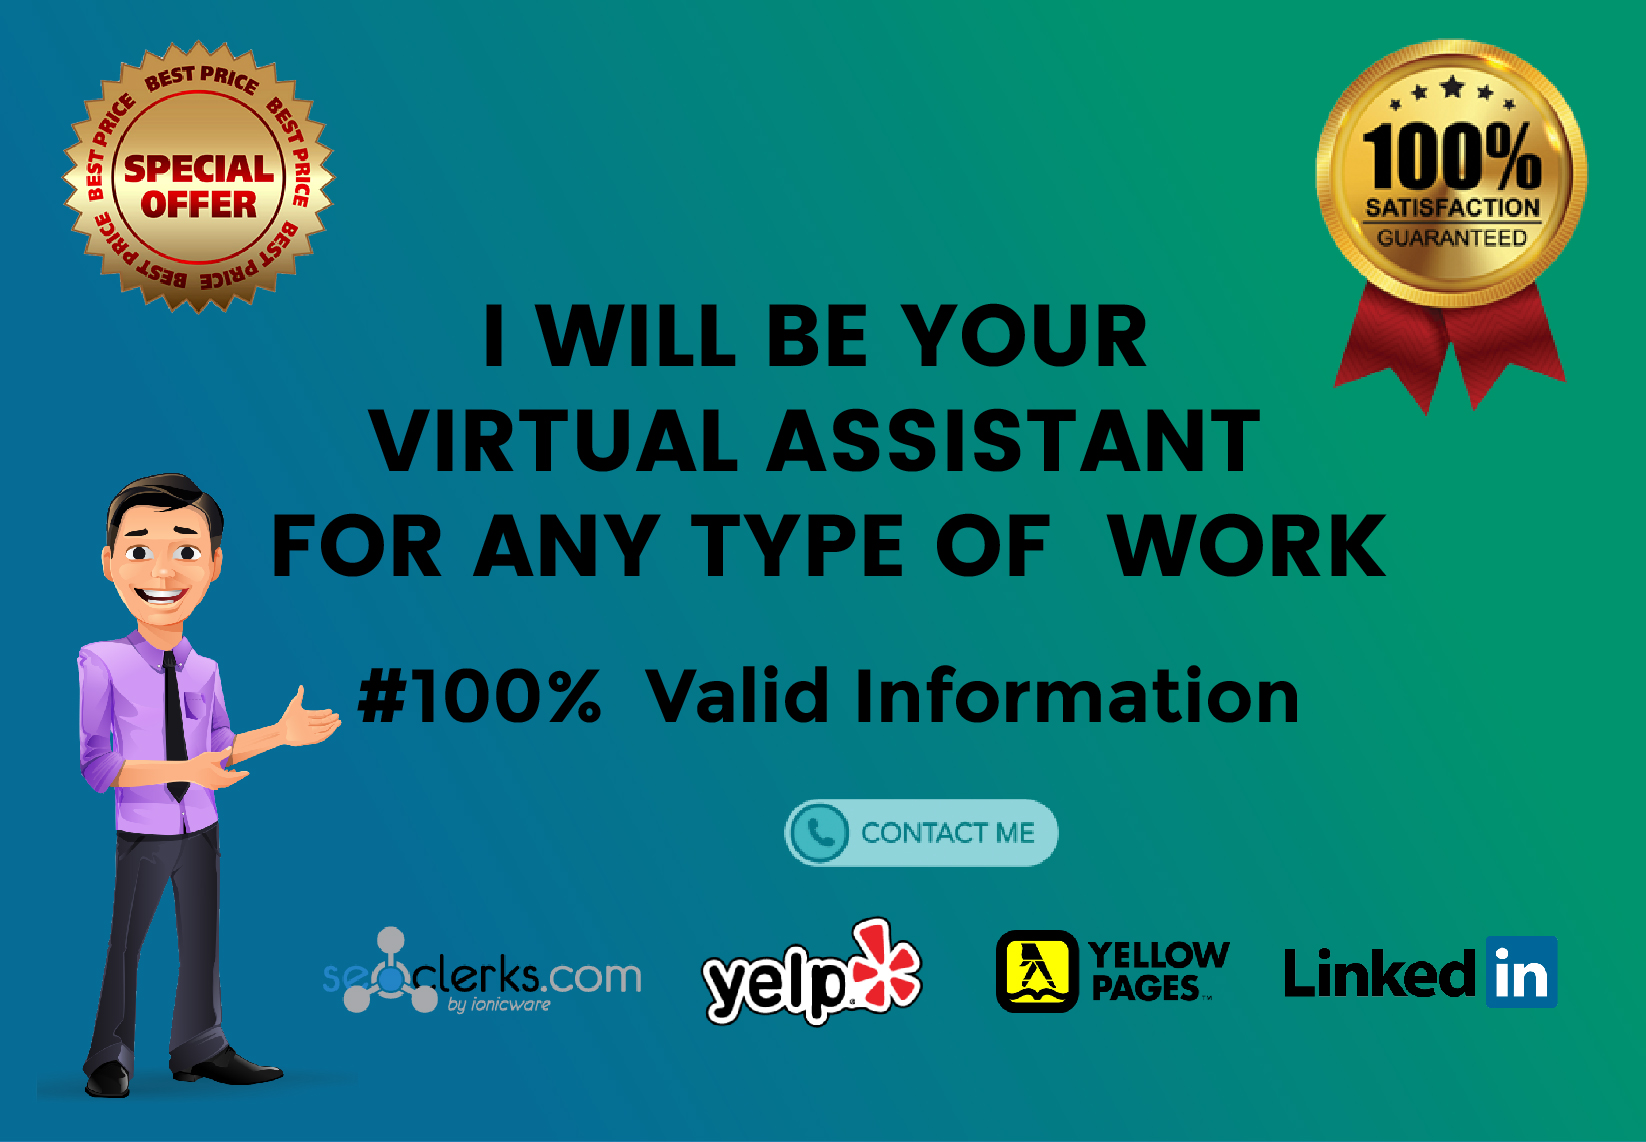 I will be your online virtual assistant for any type of work